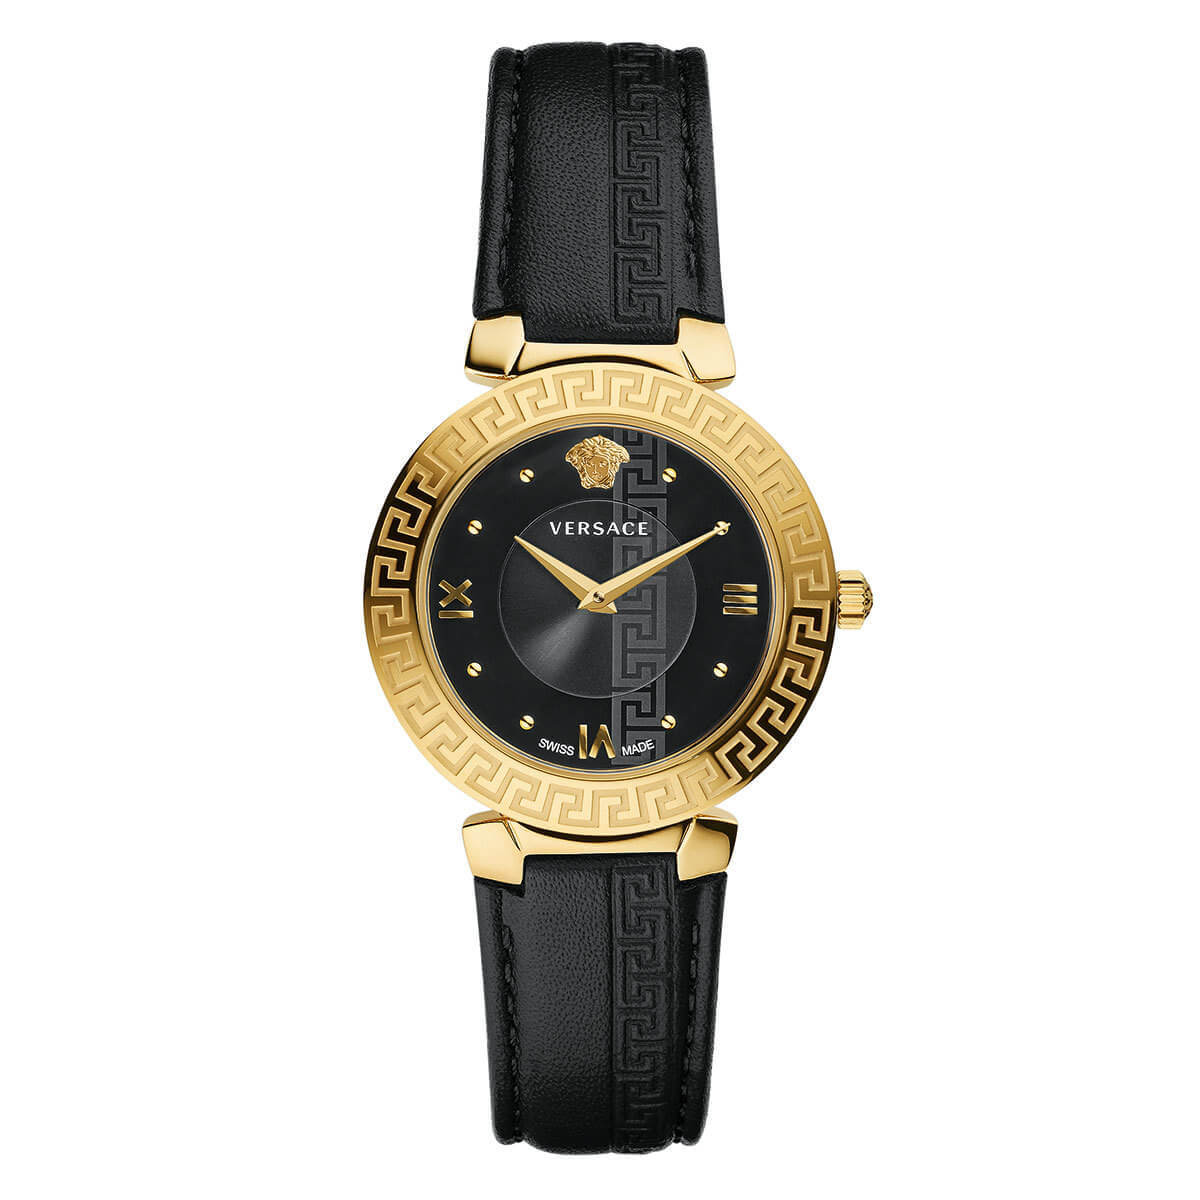 V1605_0017_Watches-versace-1